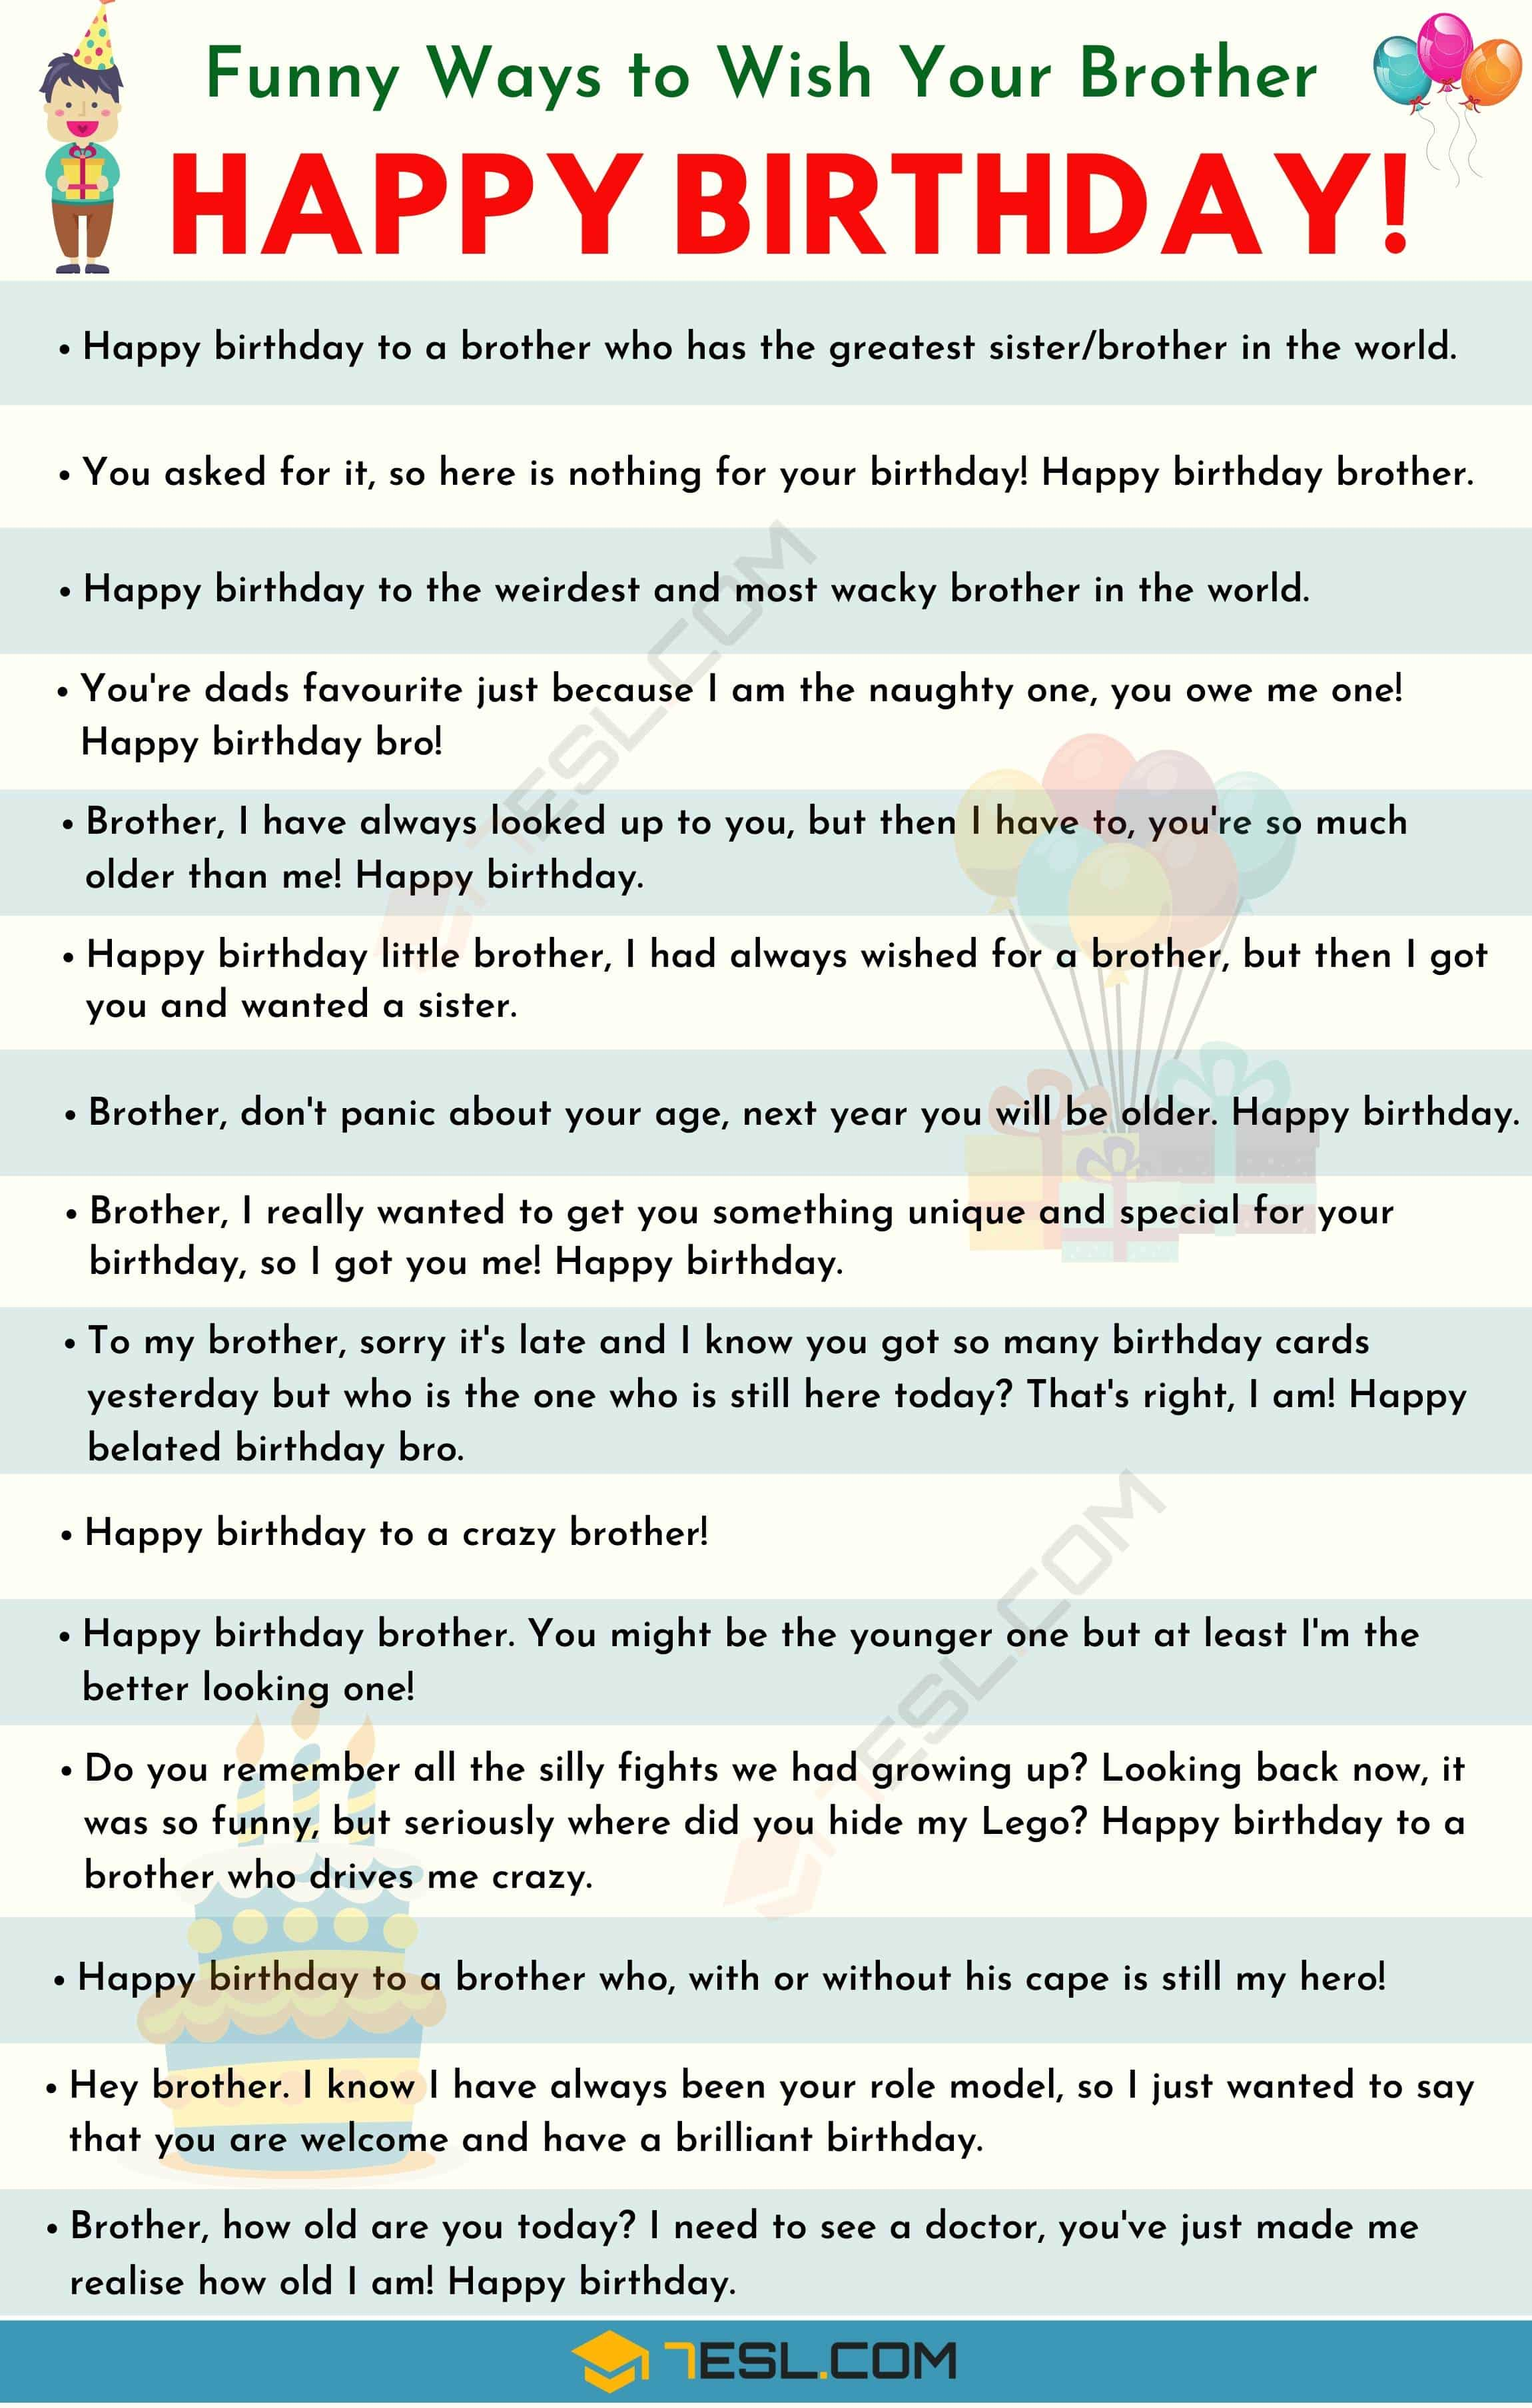 Happy Birthday Brother: 35+ Best and Funniest Birthday Wishes For Brother